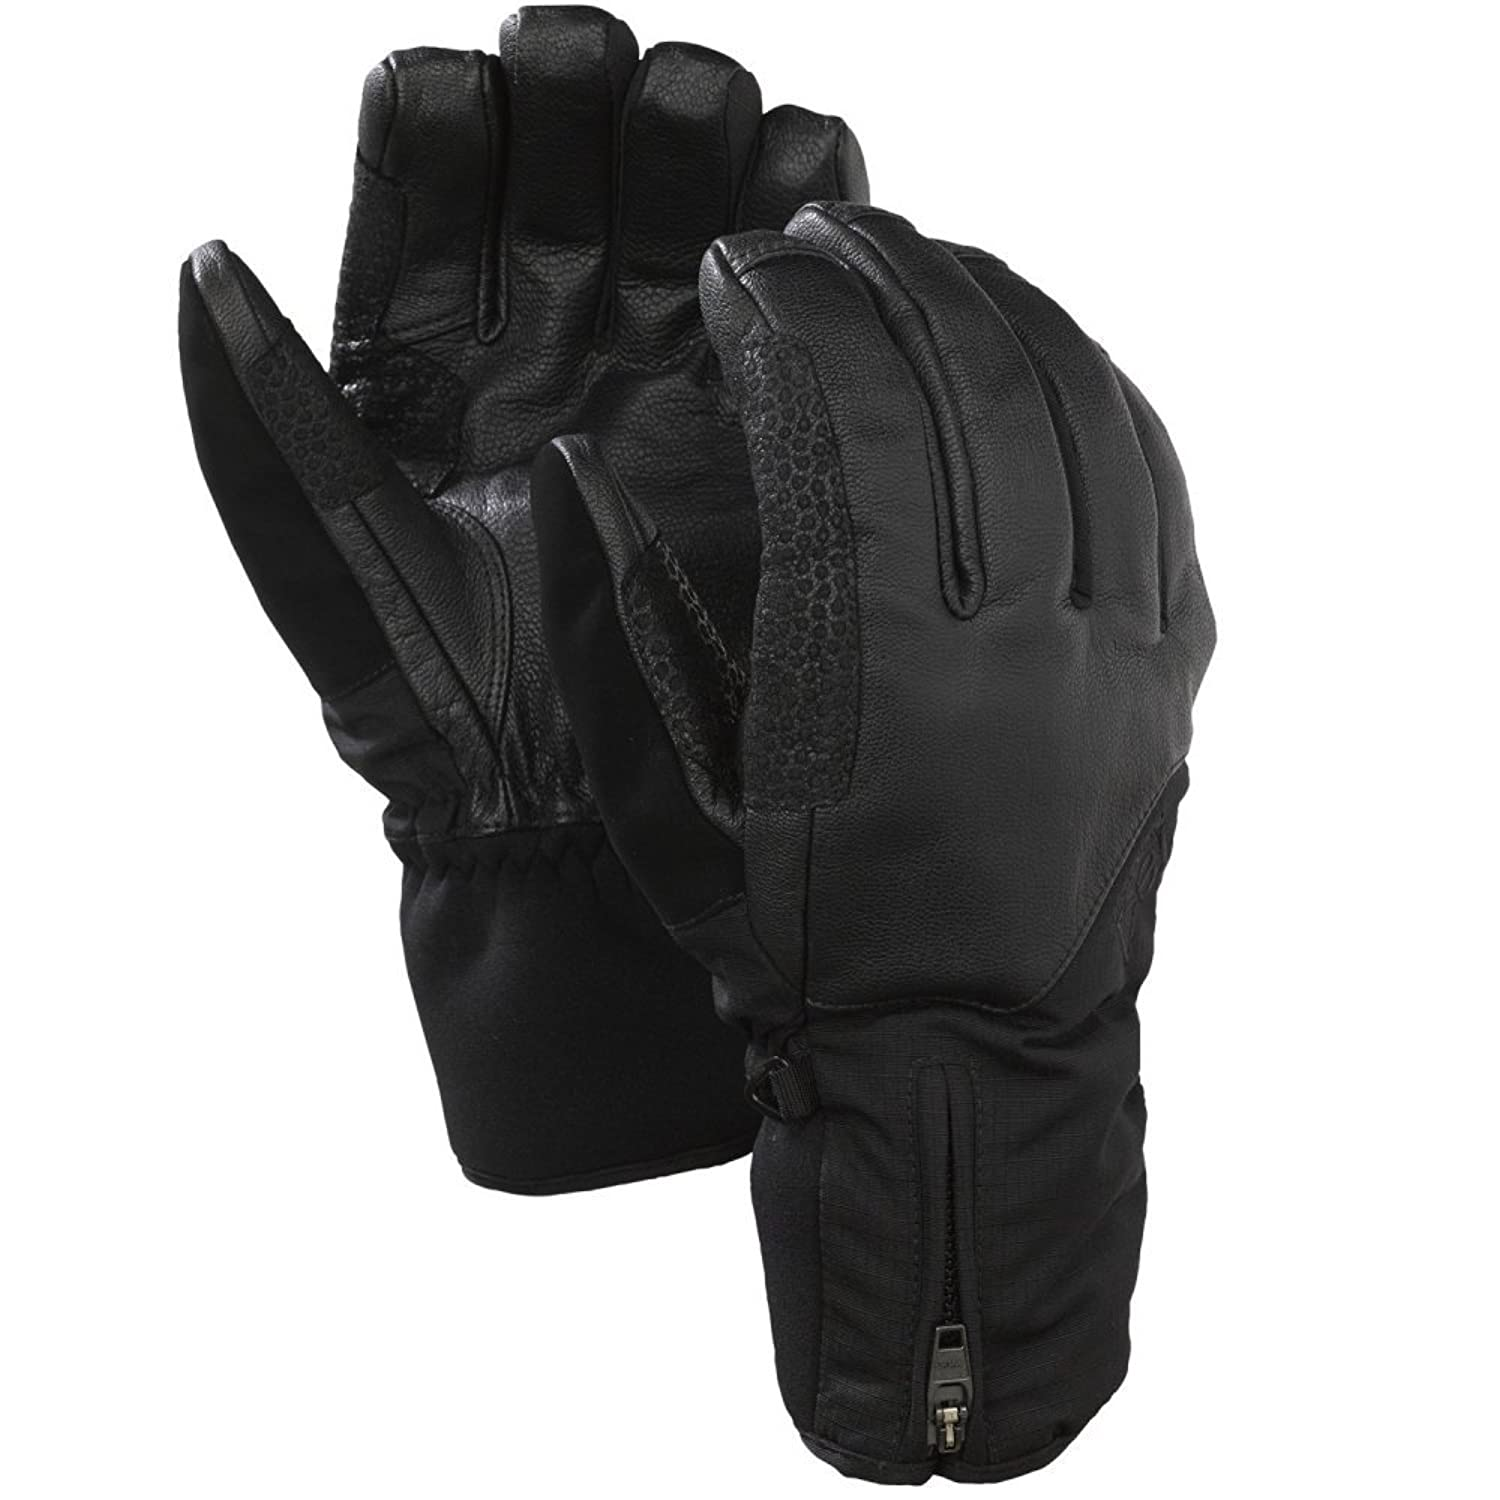 Burton AK Guide (True Black) Glove halo bruteshot 3d paper model